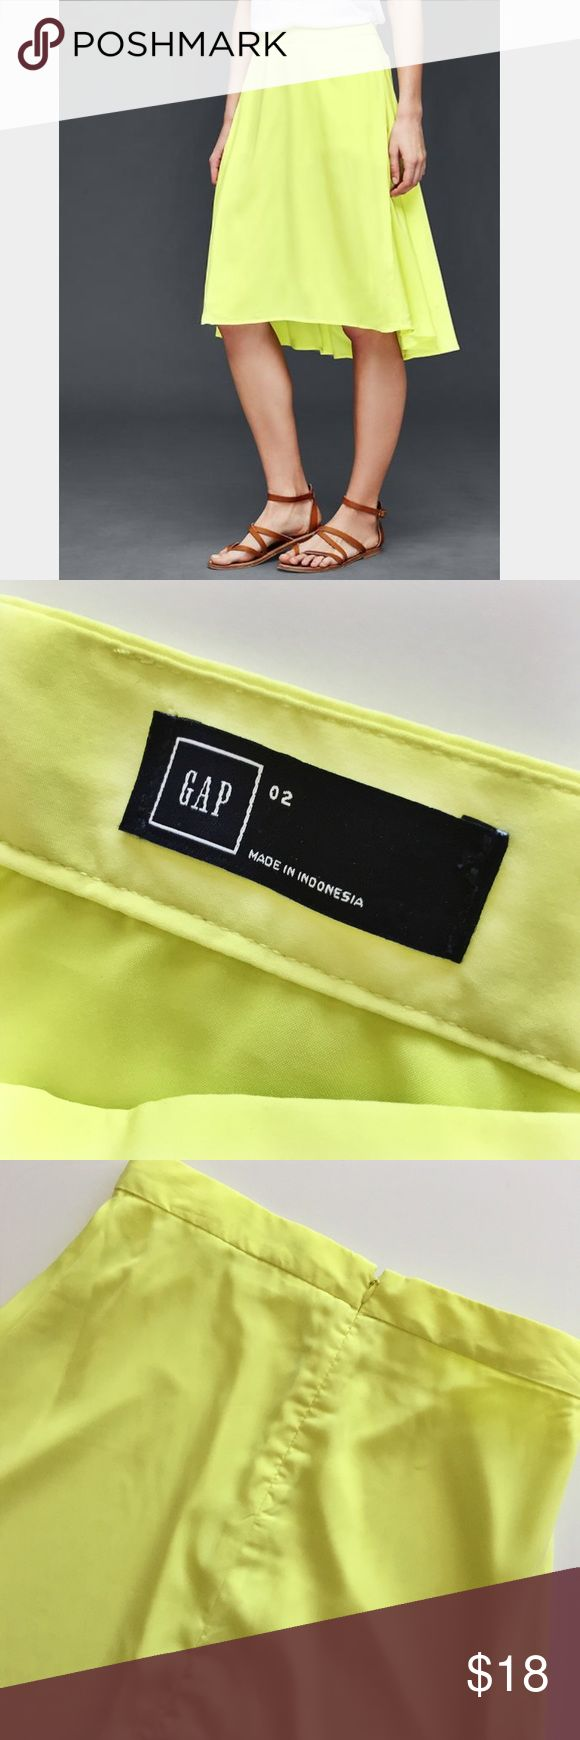 NWOT Gap neon yellow skirt size 2 This bright neon yellow skirt from Gap has never been worn. It is a gorgeous hi low, knee length skirt with a zipper back. Fully lined. Machine wash cold. Size 2. GAP Skirts High Low